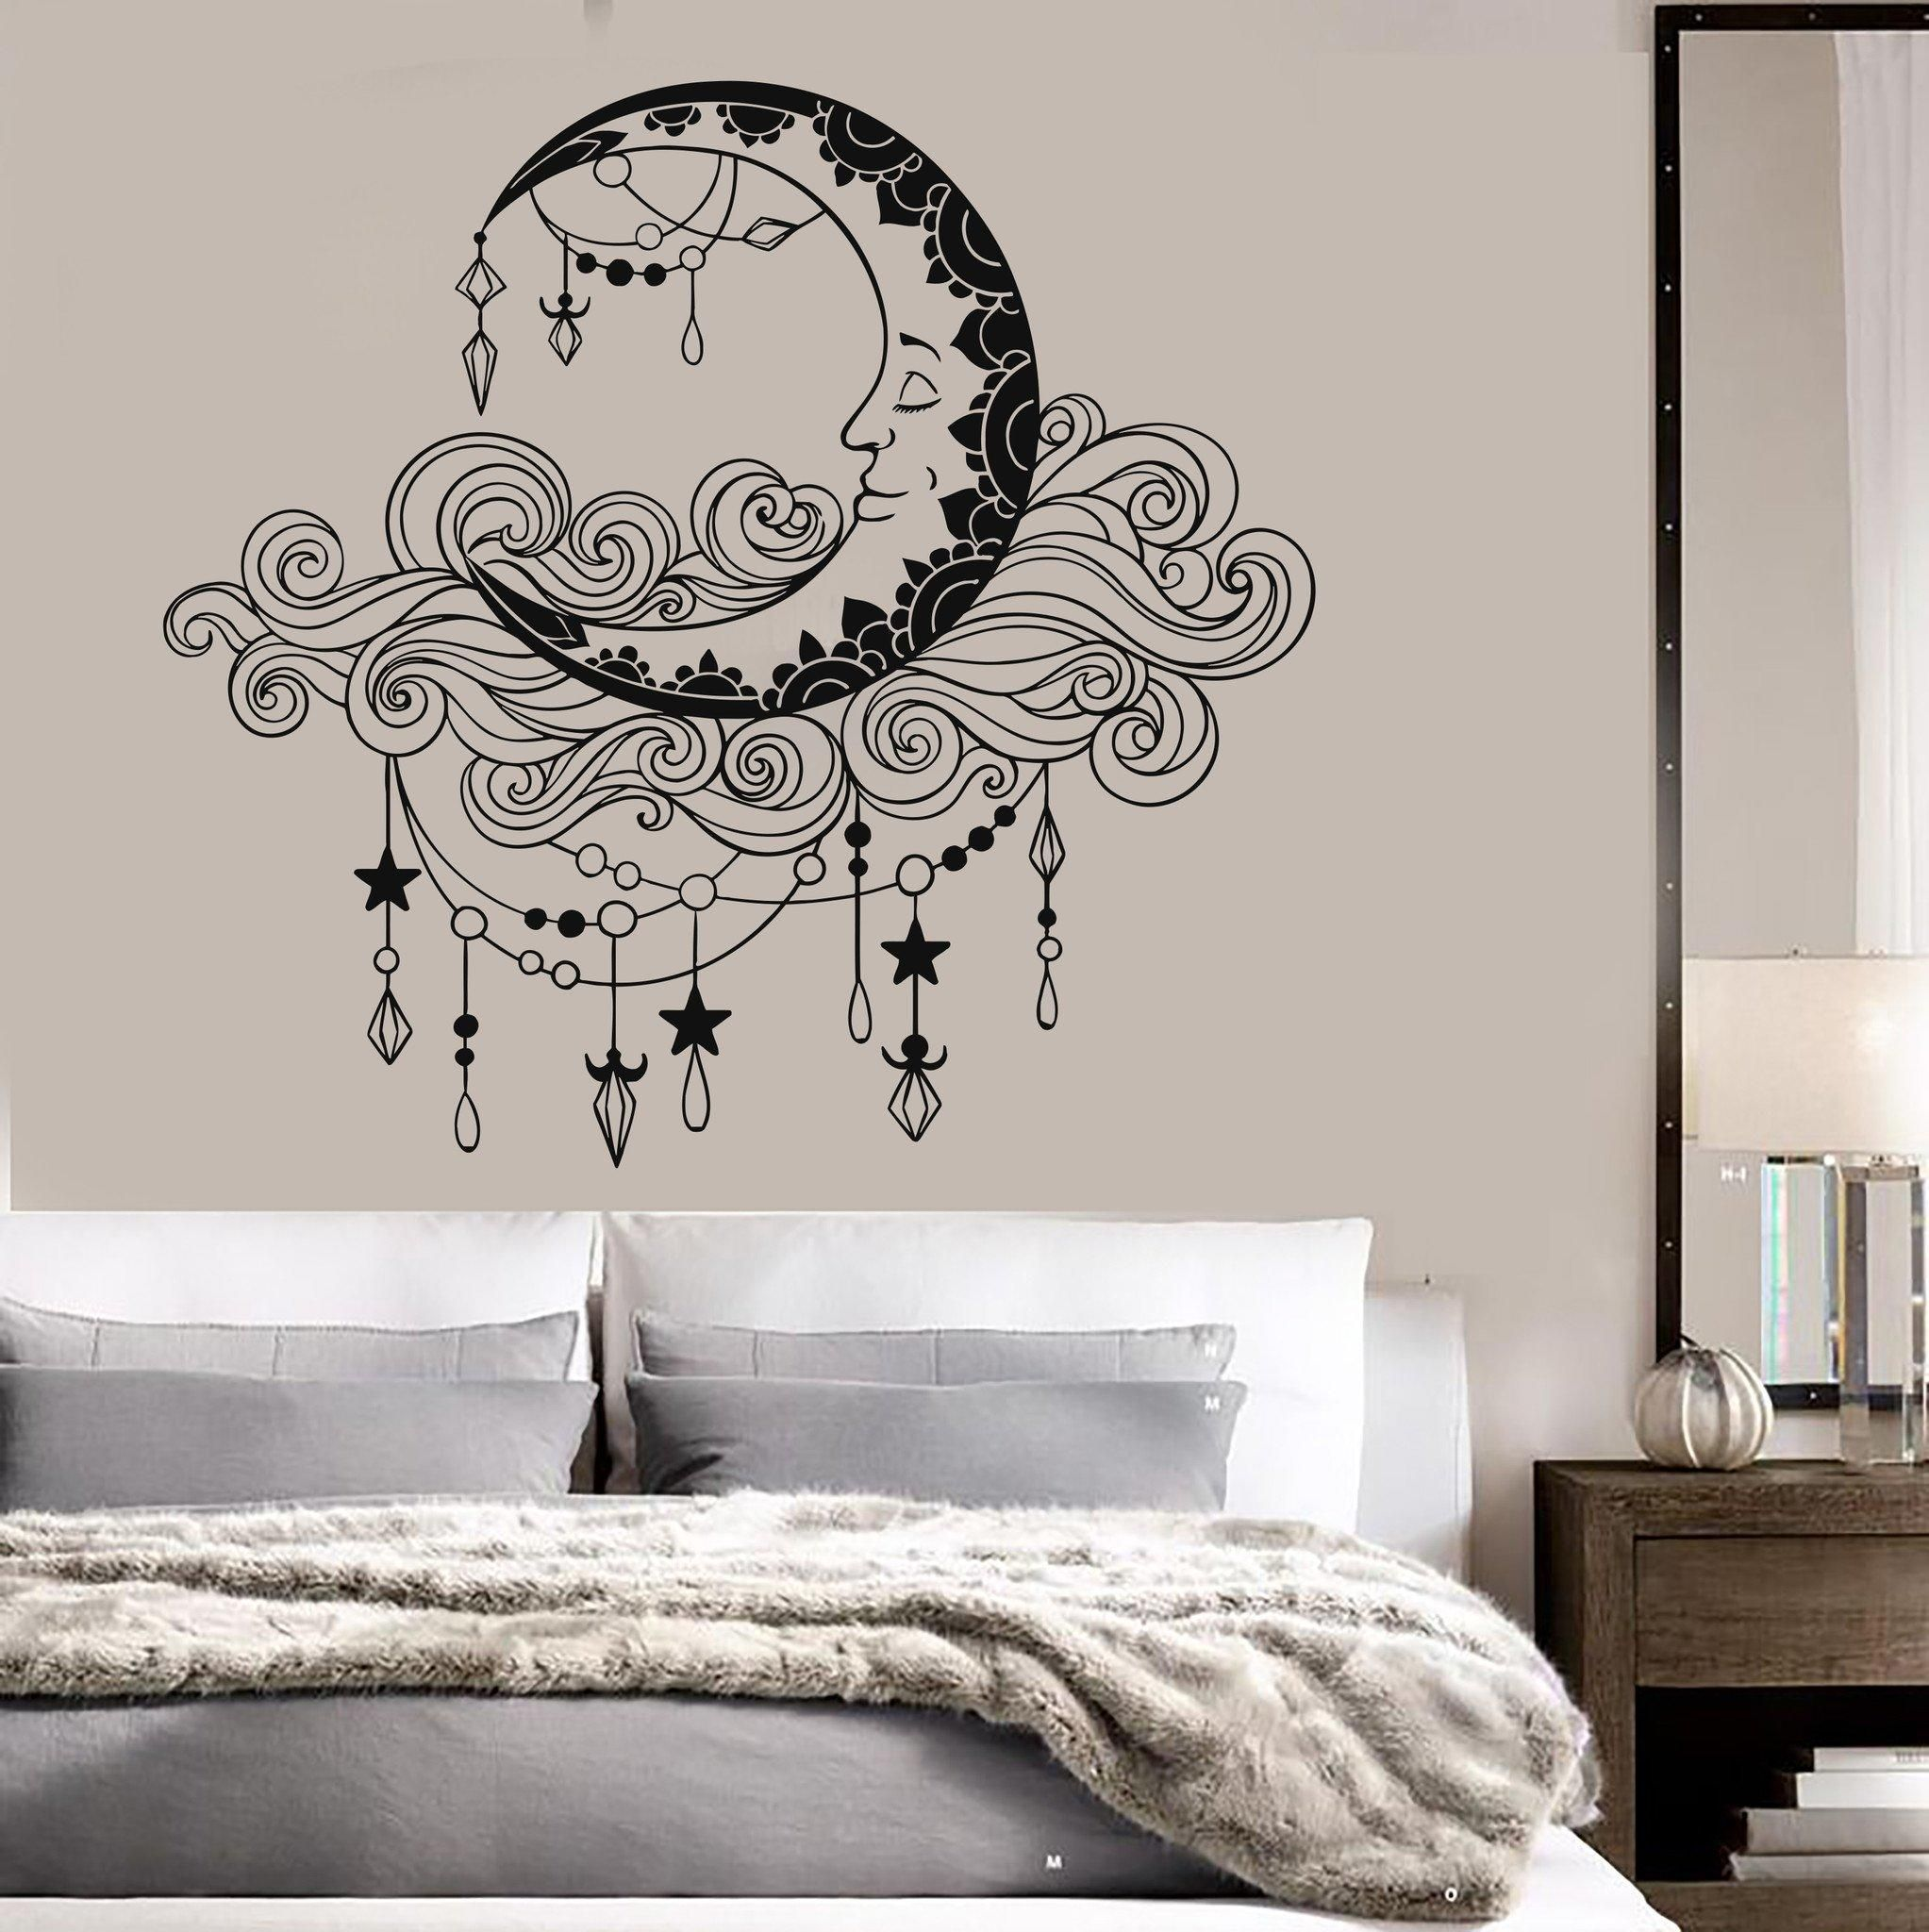 Vinyl Wall Decal Moon Clouds Bedroom Decor Stickers Mural Unique Gift Ig3694 In 2020 Wall Decals Living Room